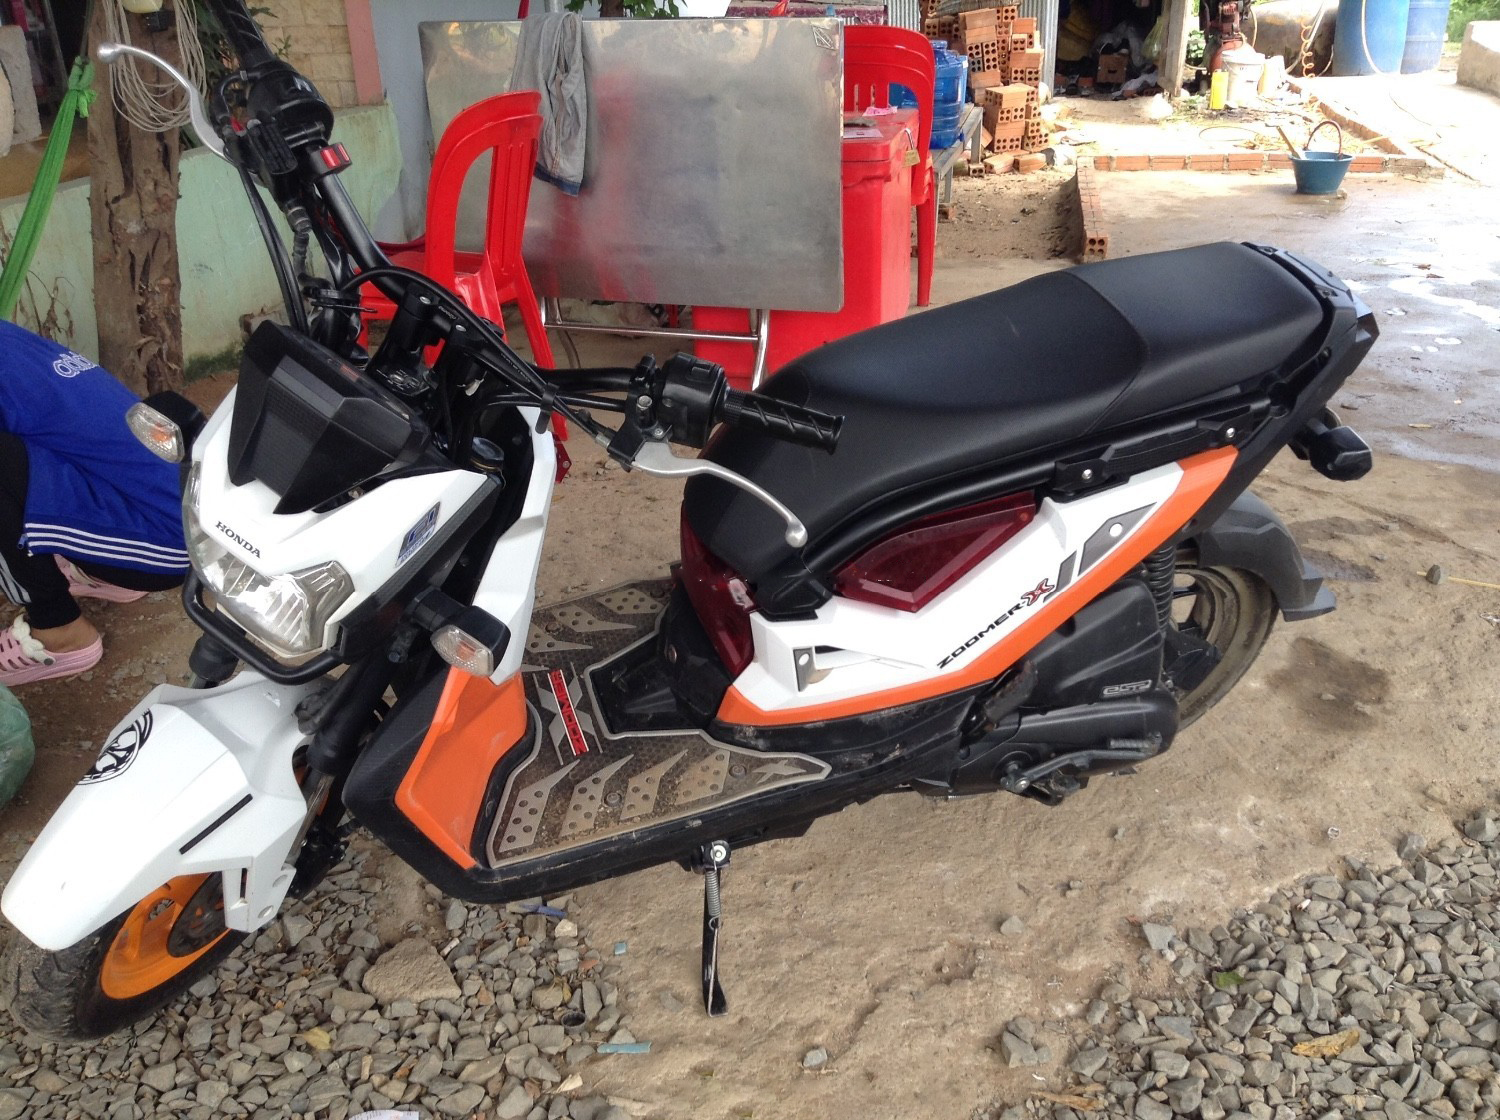 Hello Everybody This Is The New Model Of Honda Zoomer X 2017 But It No Tax Good Motobyce For Cambodia And Moto All People